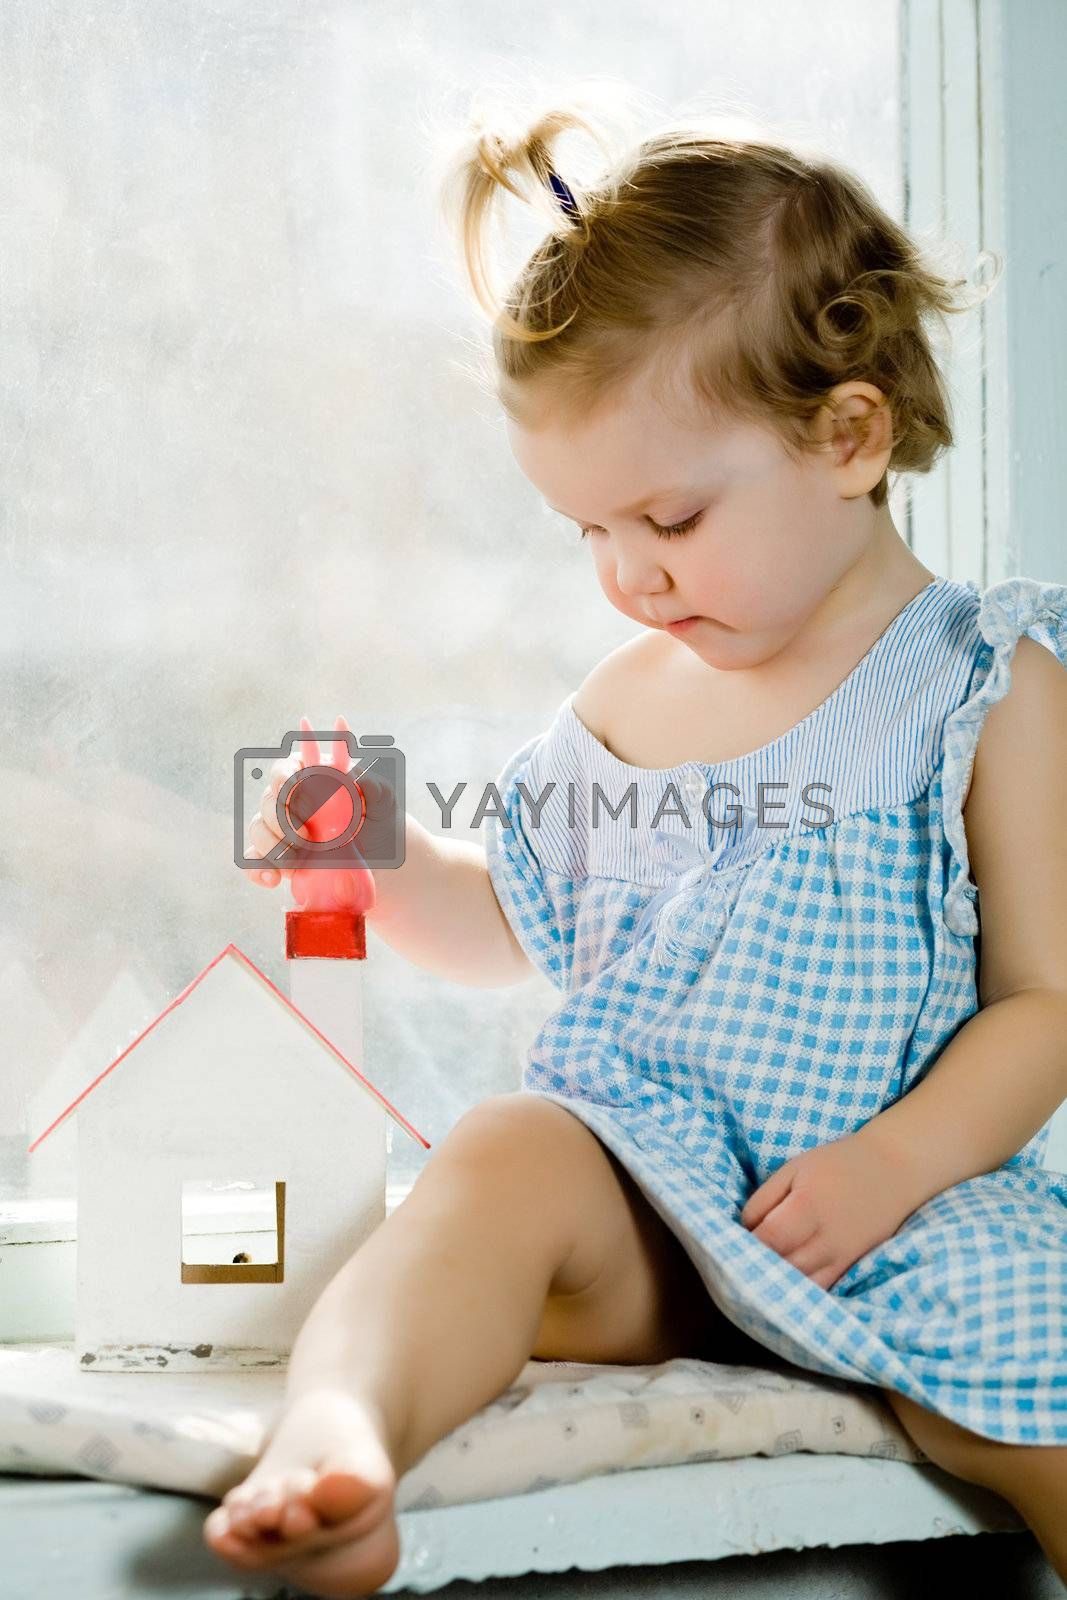 An image of a baby with little house on the window